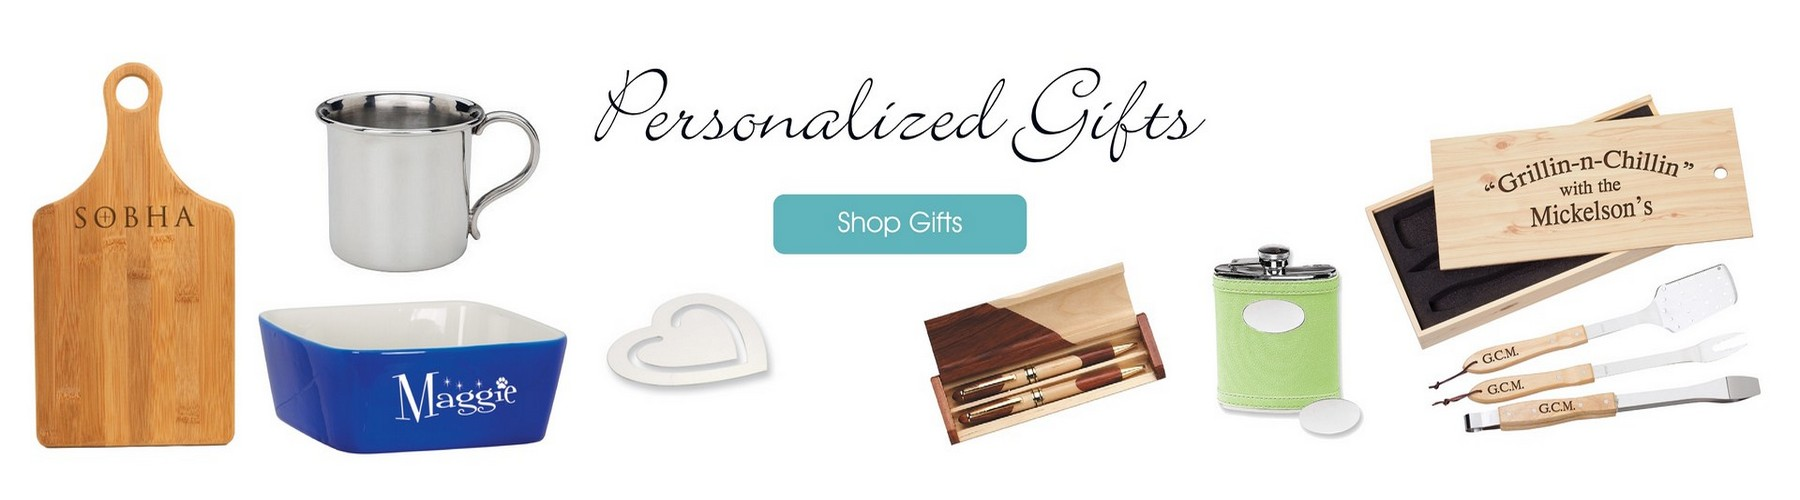 Personalized Gifts, Shop Gifts